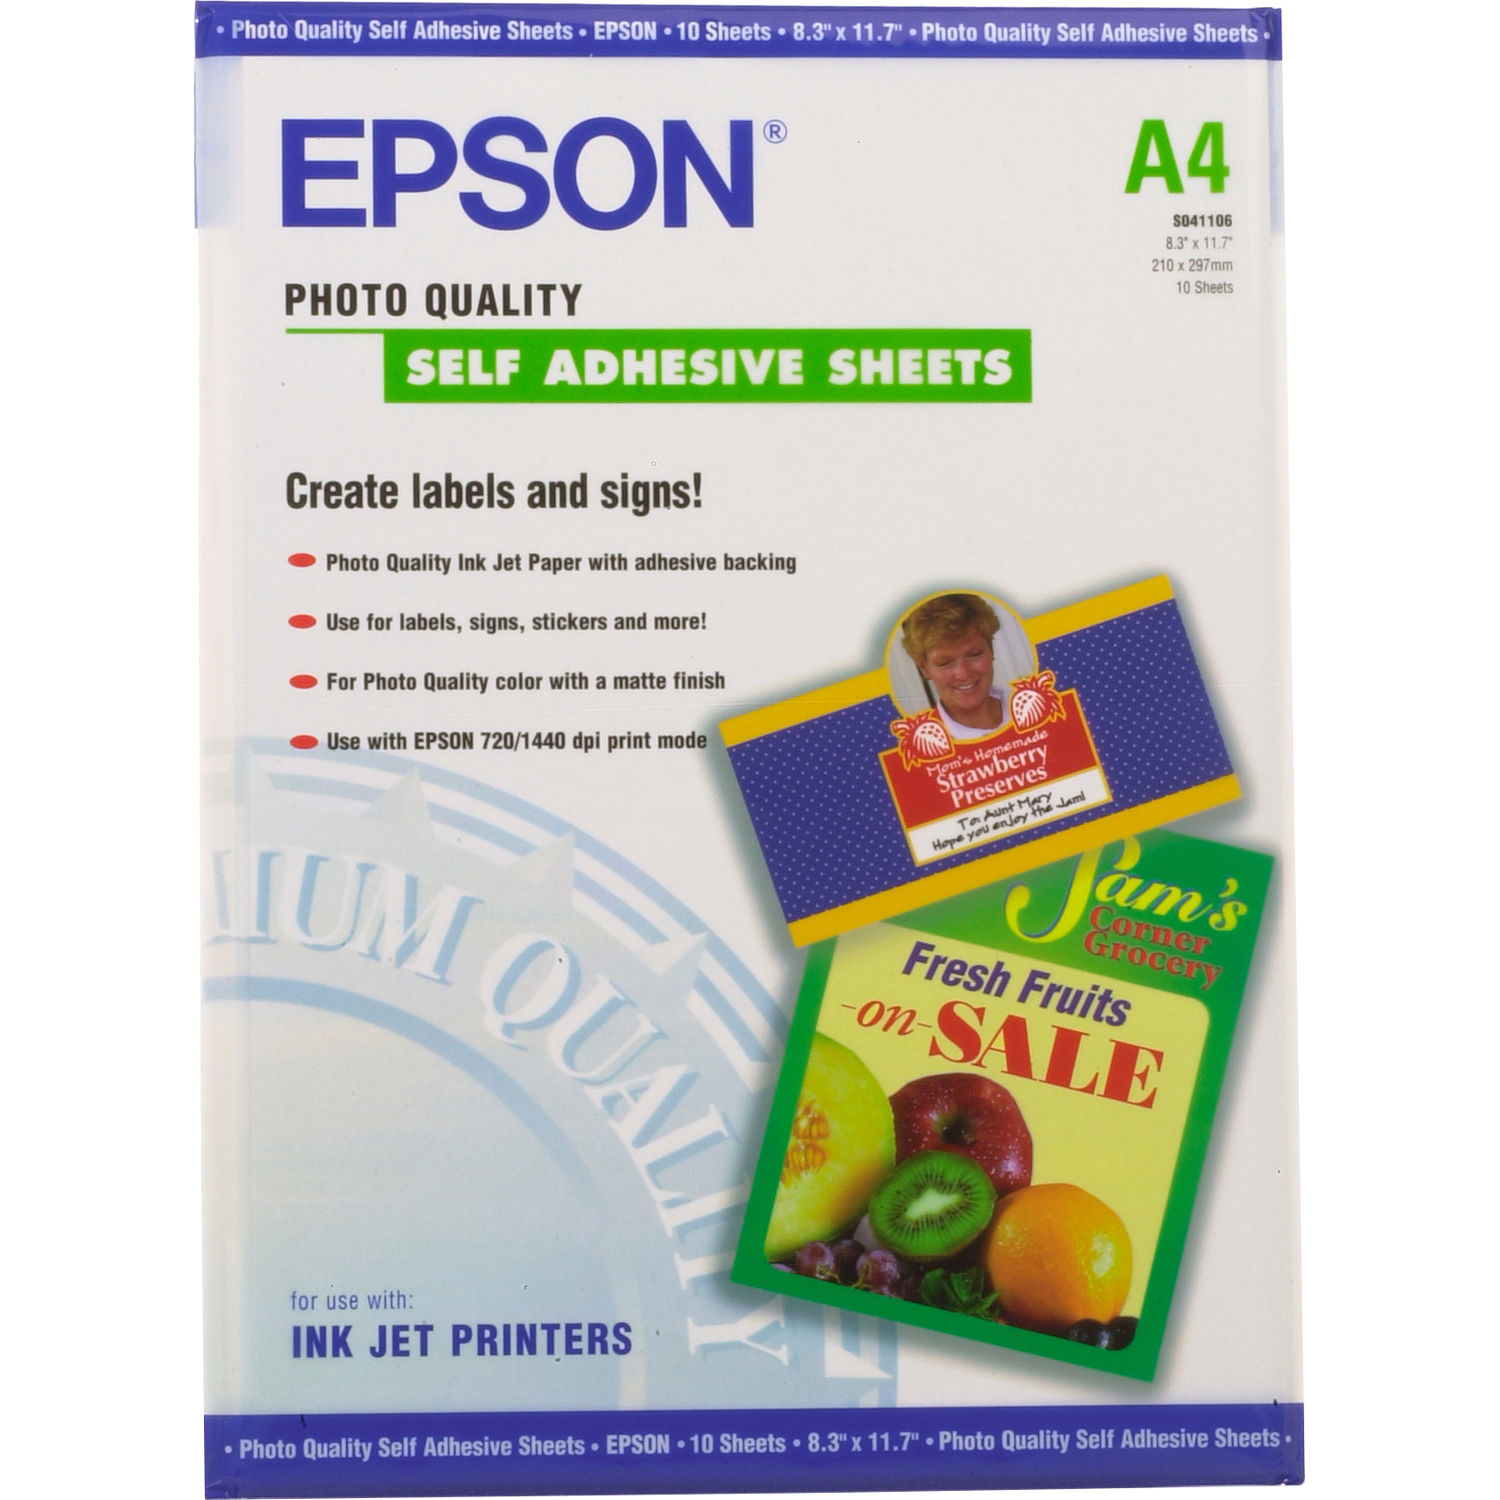 Epson Photo Quality Self Adhesive Sheets A4 8 3 X 11 7 10 Sheets